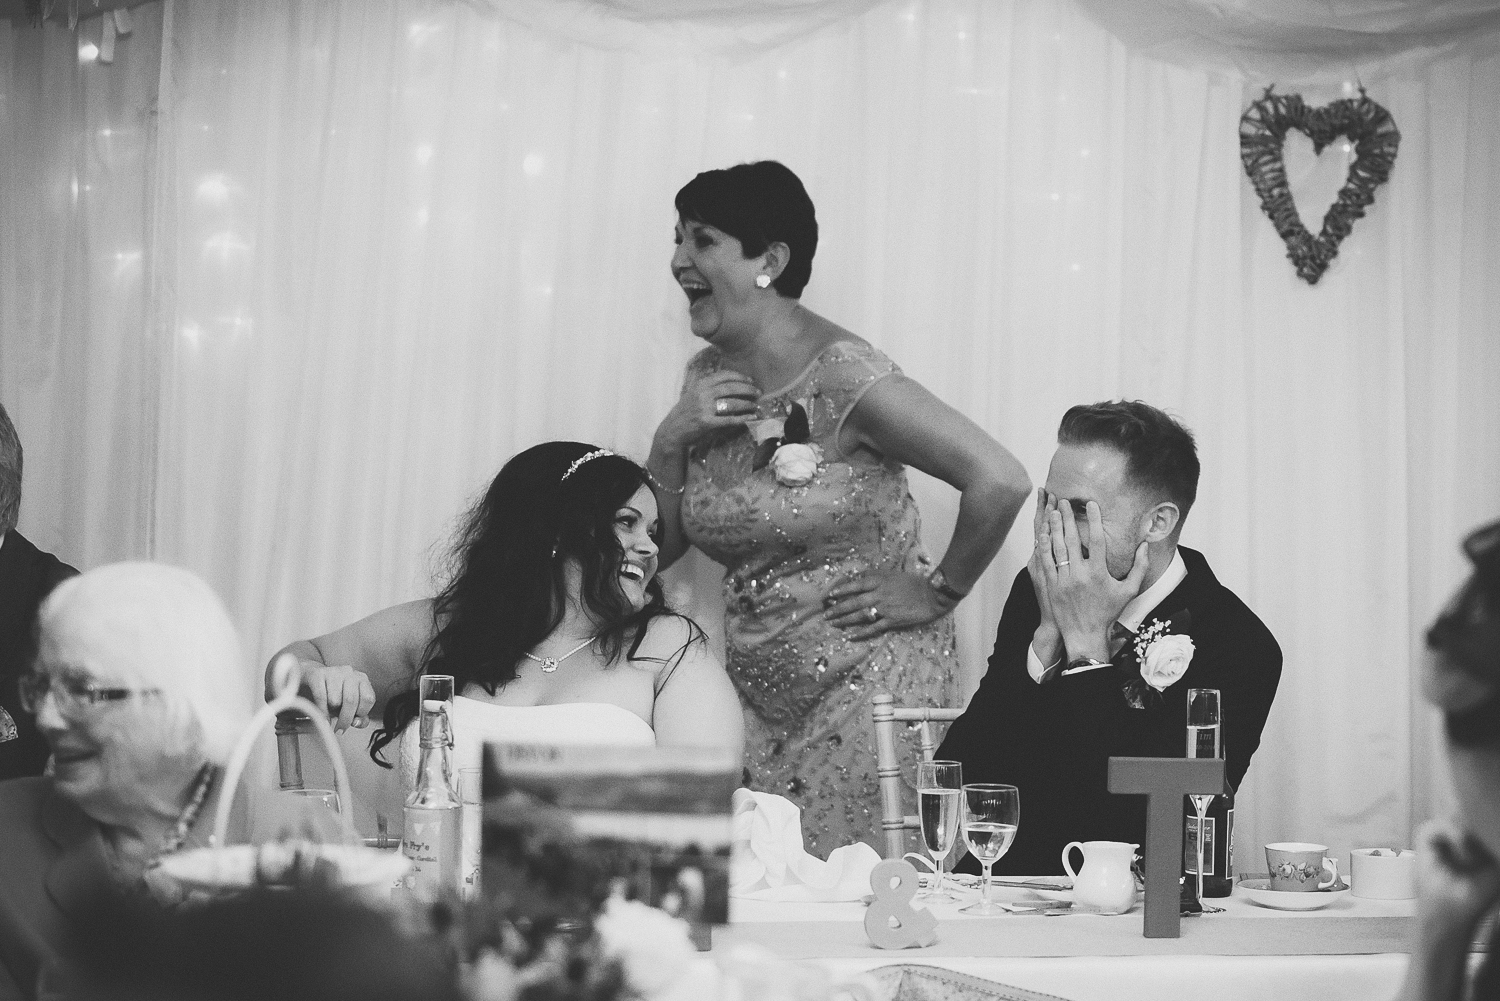 natural-documentary-wedding-photography-cardiff-south-wales-43.jpg